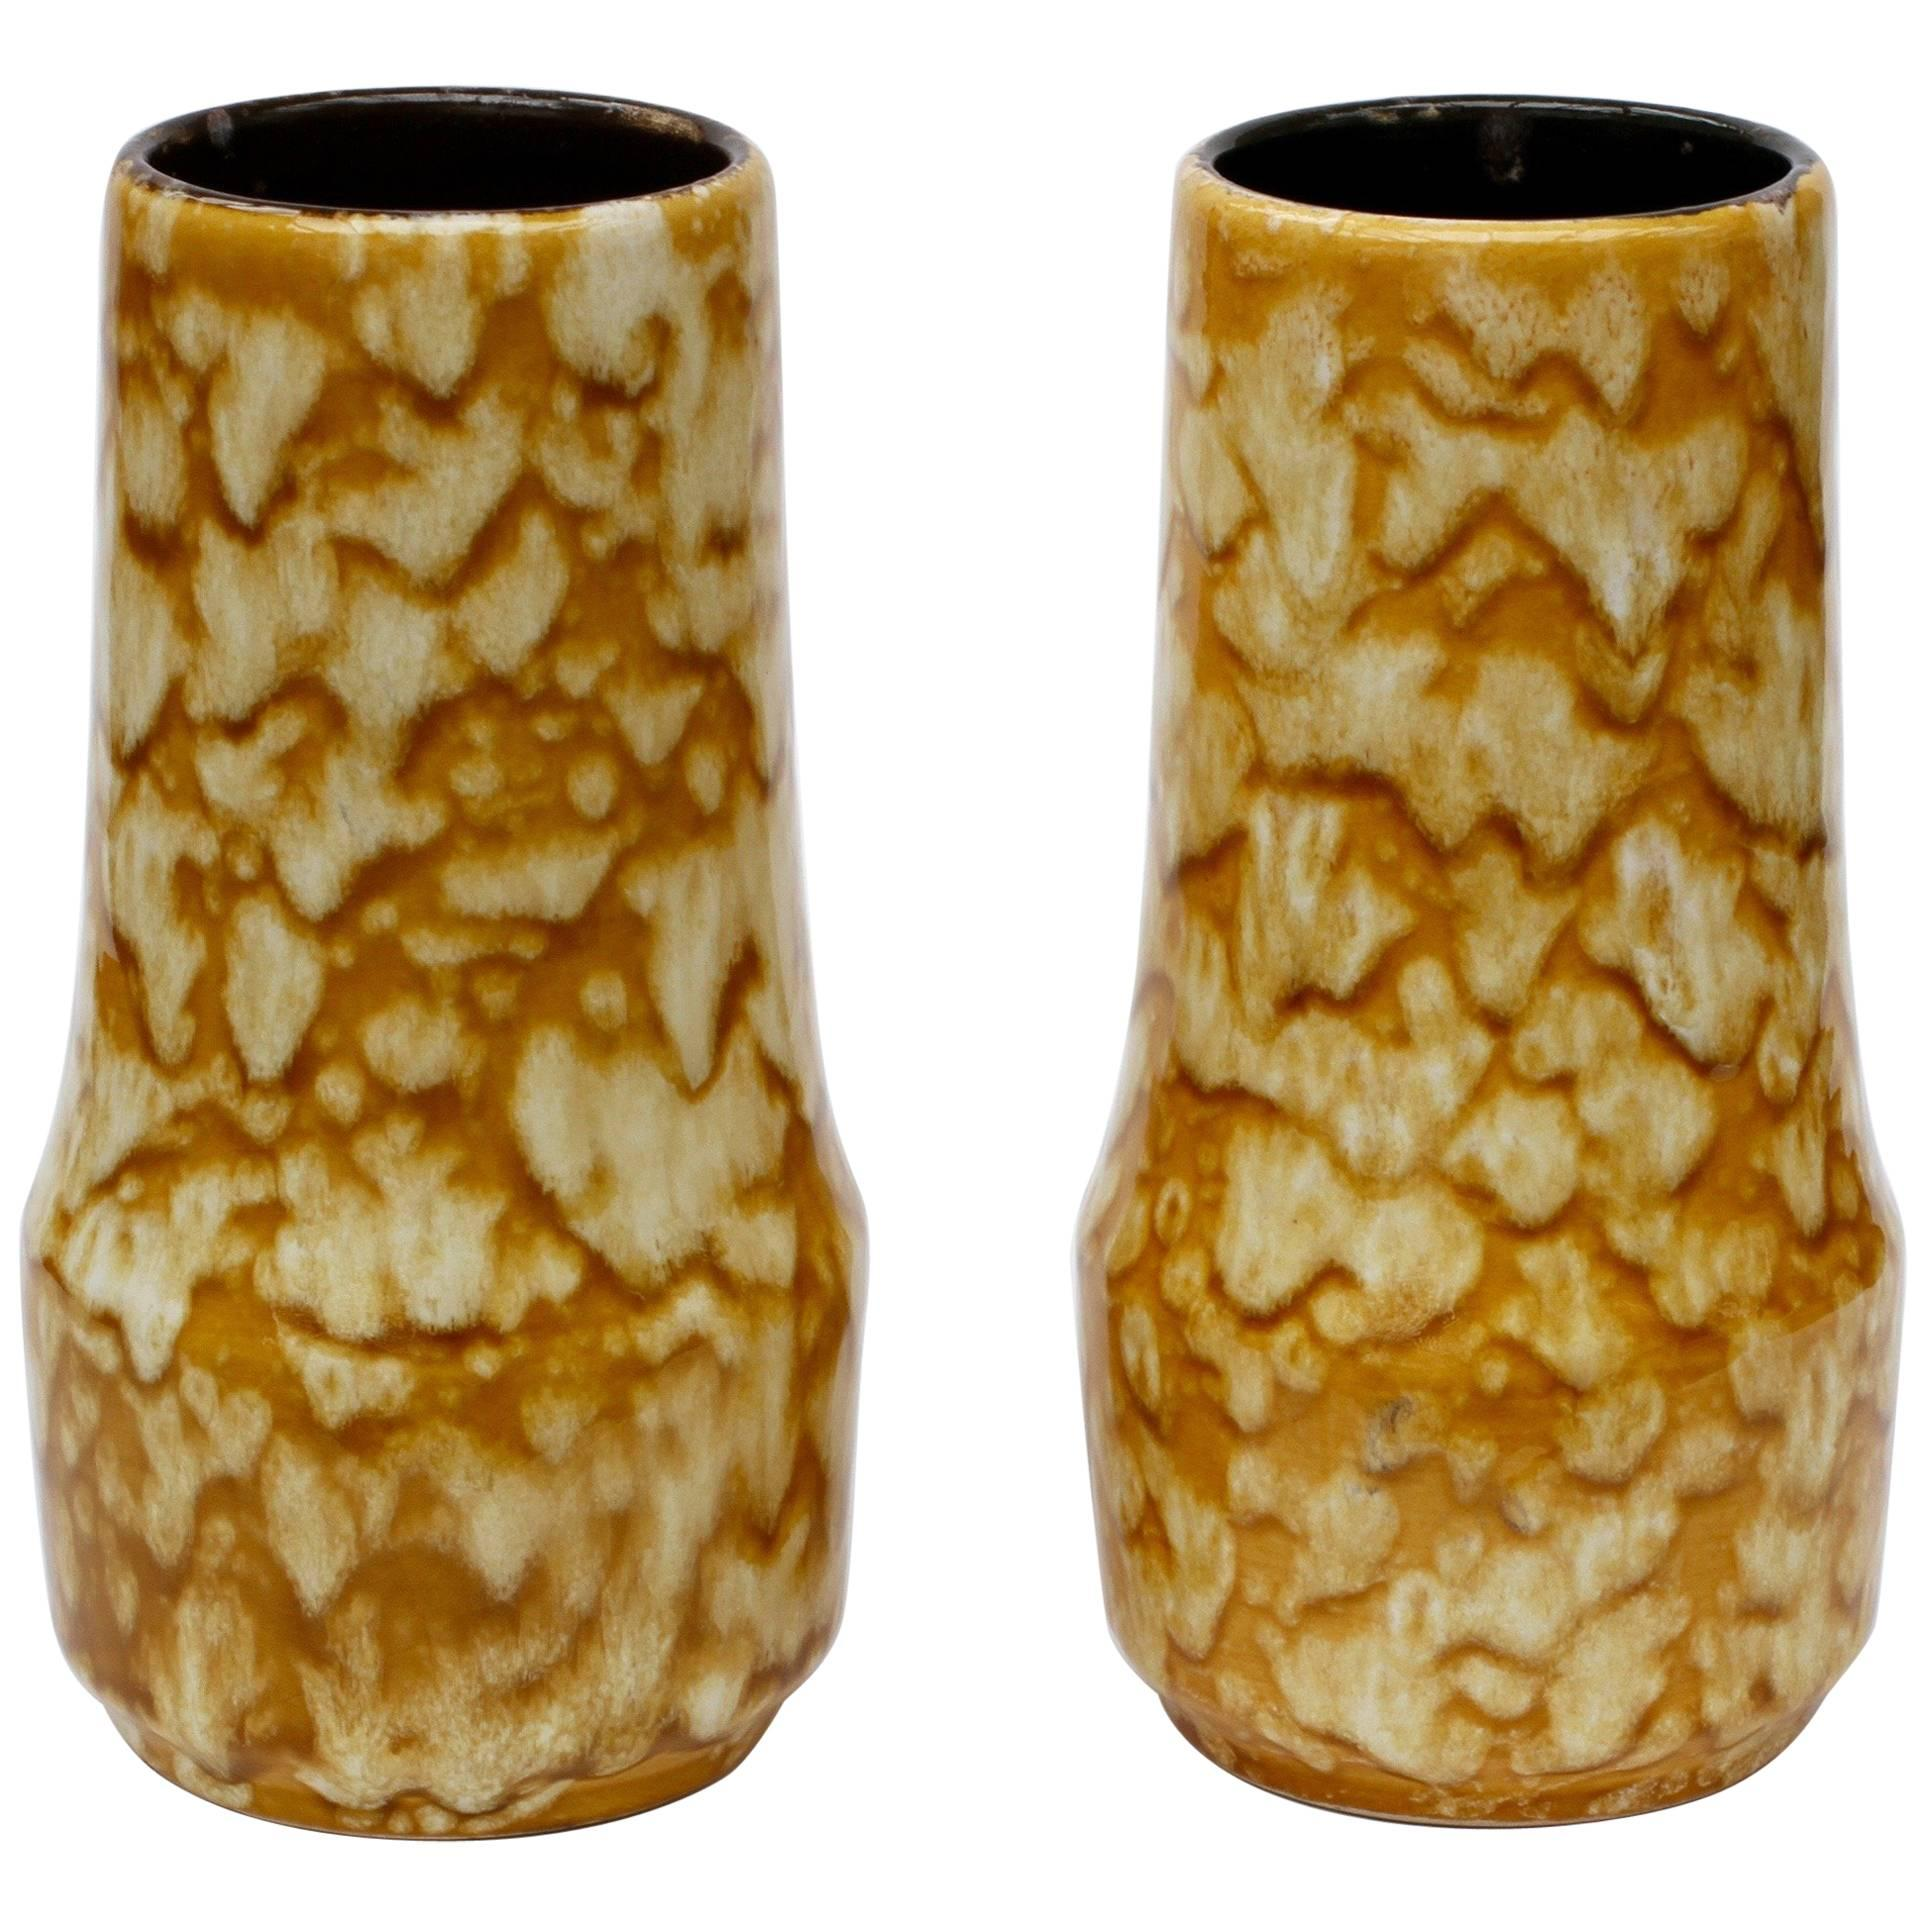 Pair of West German Mid-Century Yellow Lava Glaze Vases by Scheurich, circa 1965